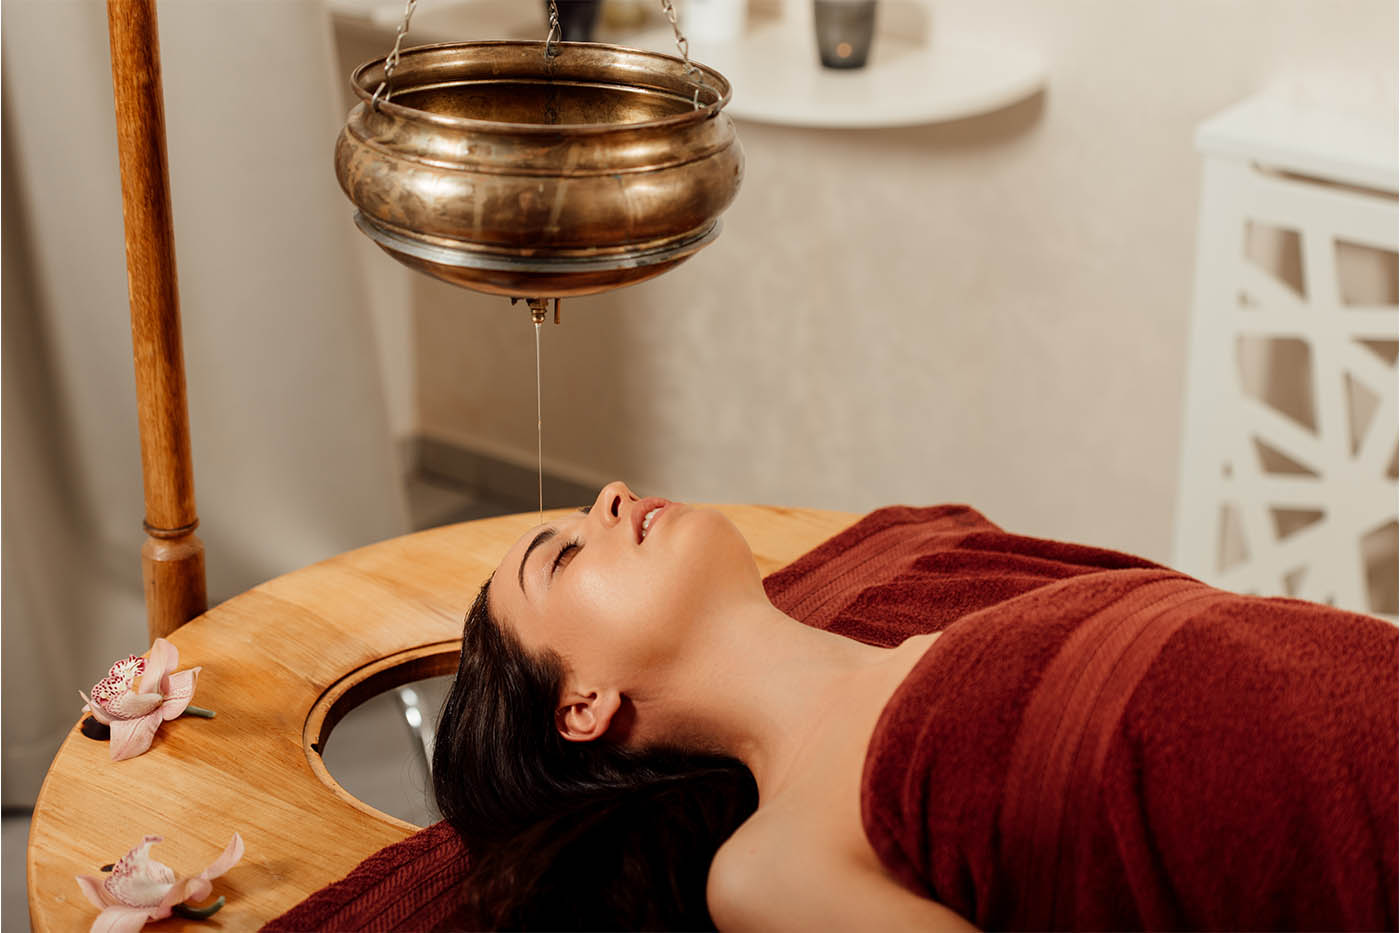 500 AYUSH wellness centres to open in Rajasthan